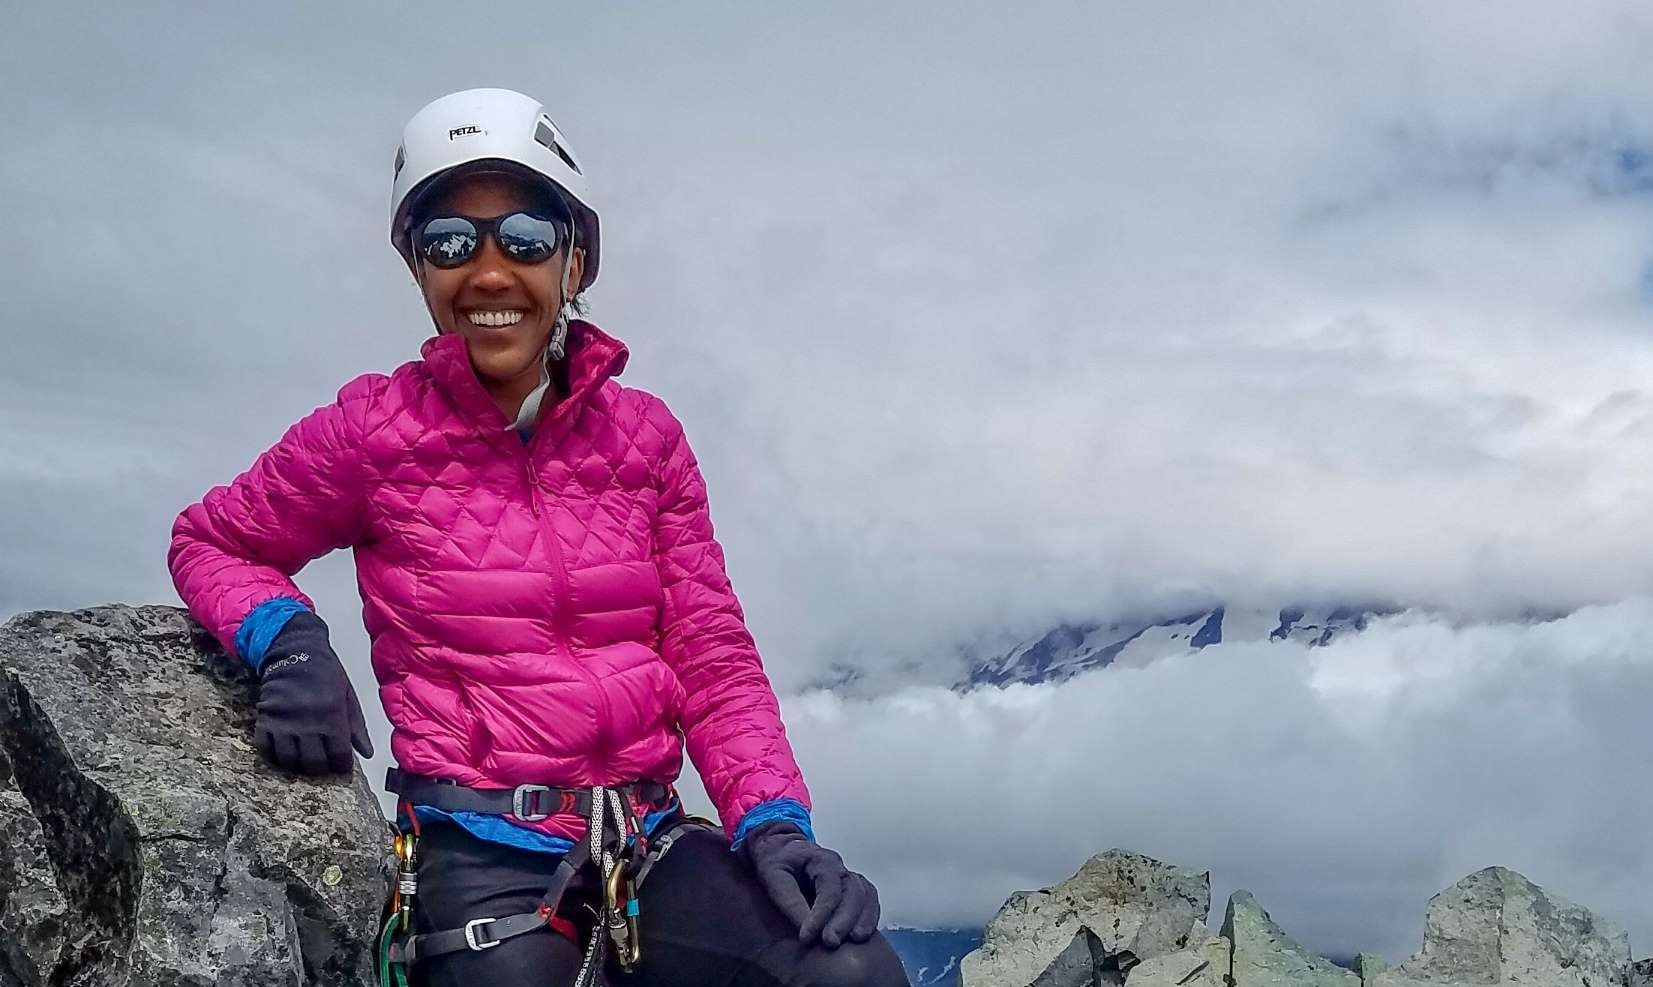 Woman with a pink jacket smiling at the top of a mountain.